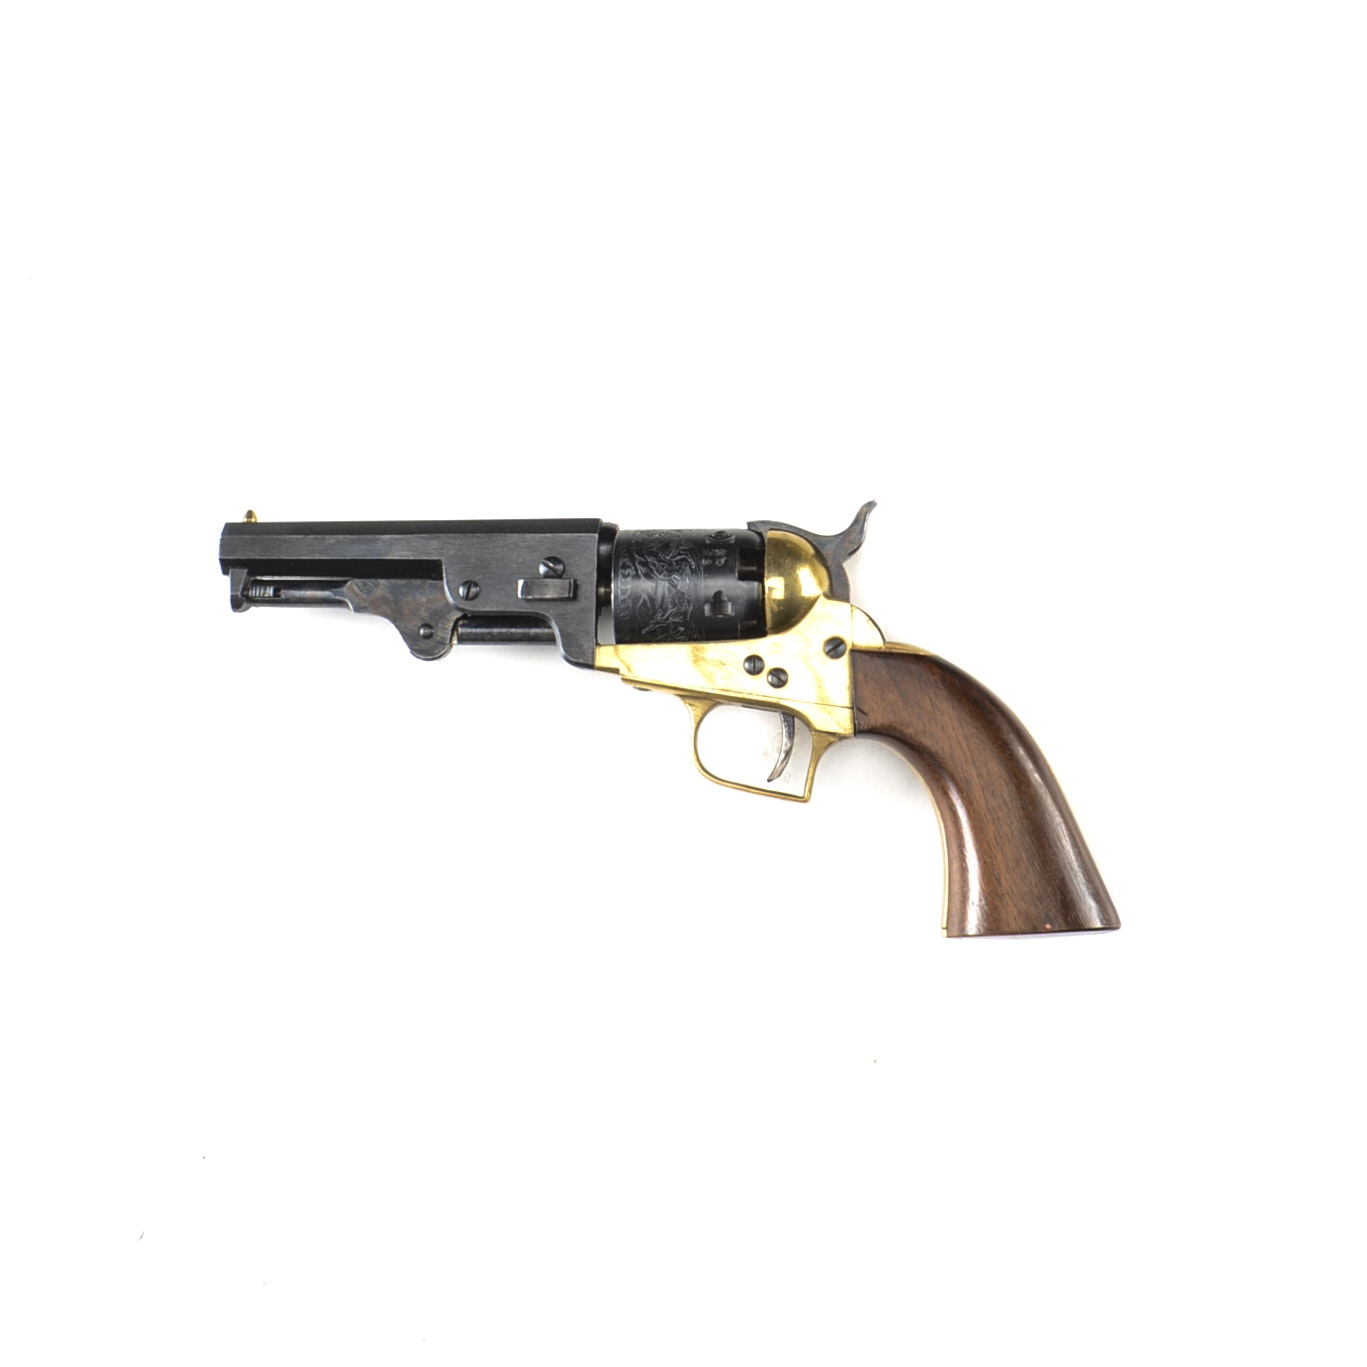 "Colt 1851 Navy Revolver ""Baby Dragoon"" Variant with Engraved Cylinder"